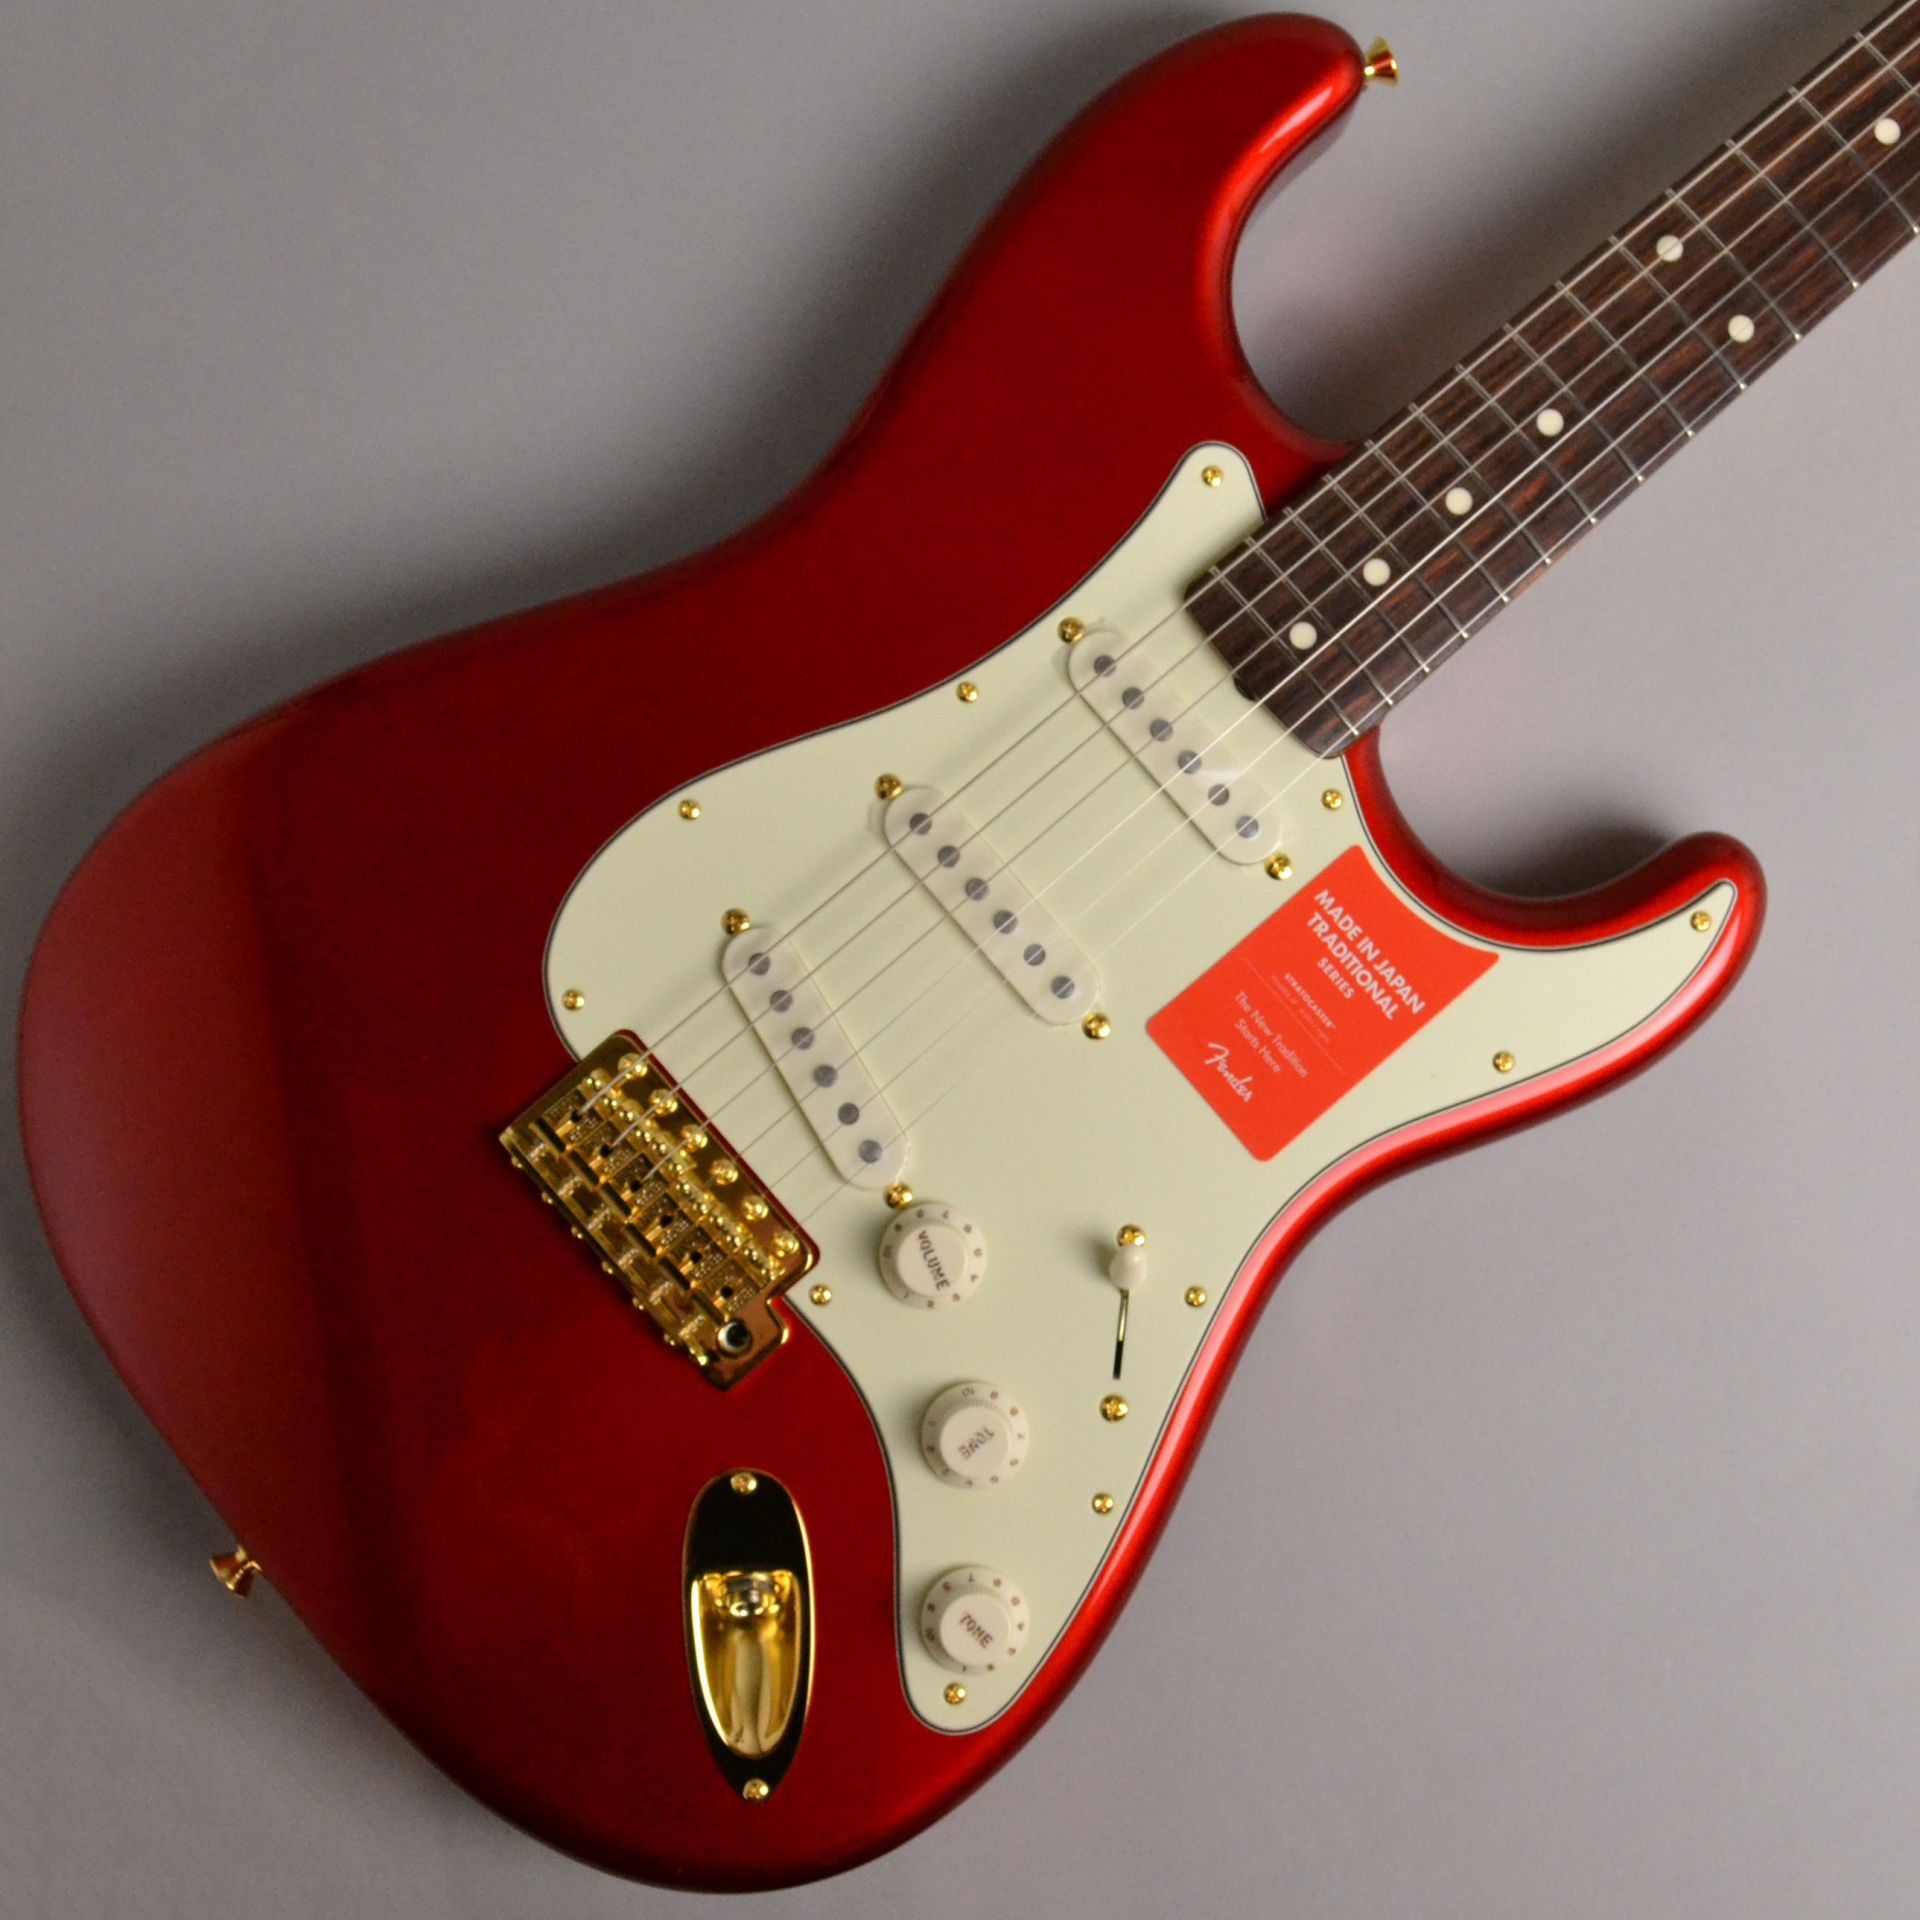 MADE IN JAPAN TRADITIONAL 60S STRATOCASTER GH Candy Apple Redのボディトップ-アップ画像